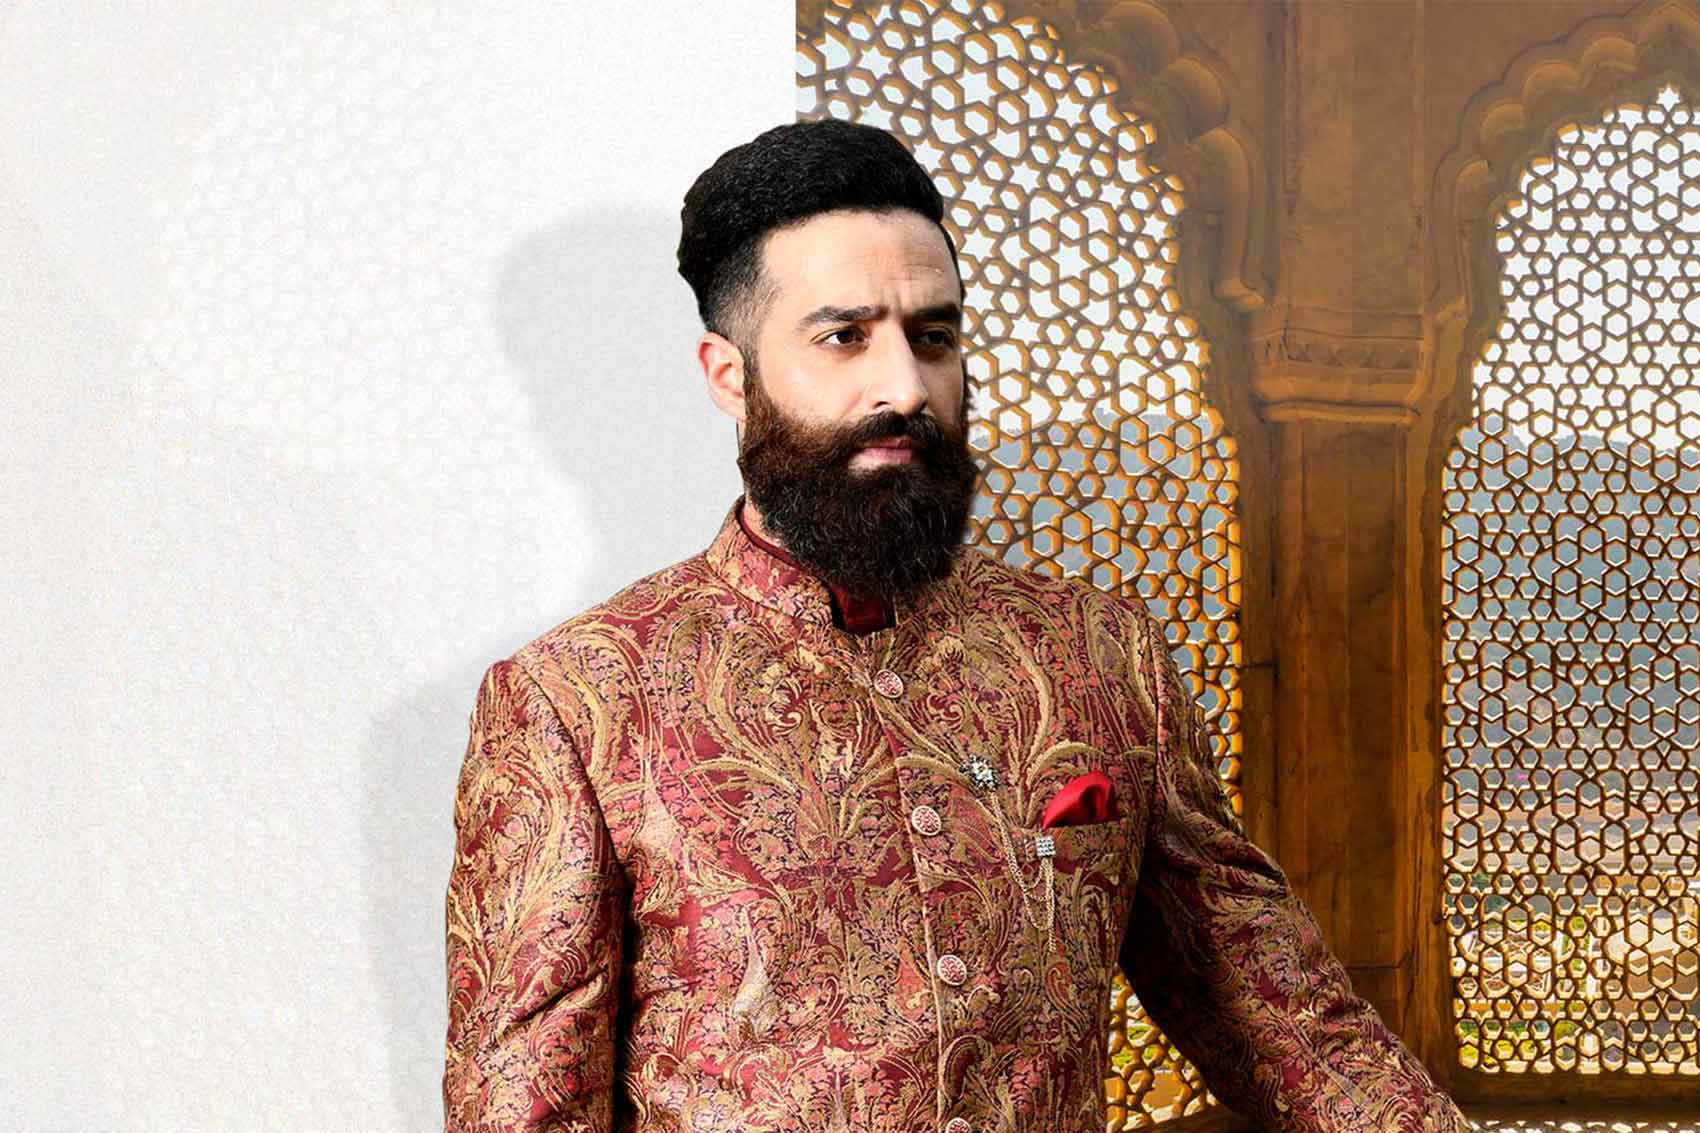 Awareness and viewpoints of the No Shave Movember in India